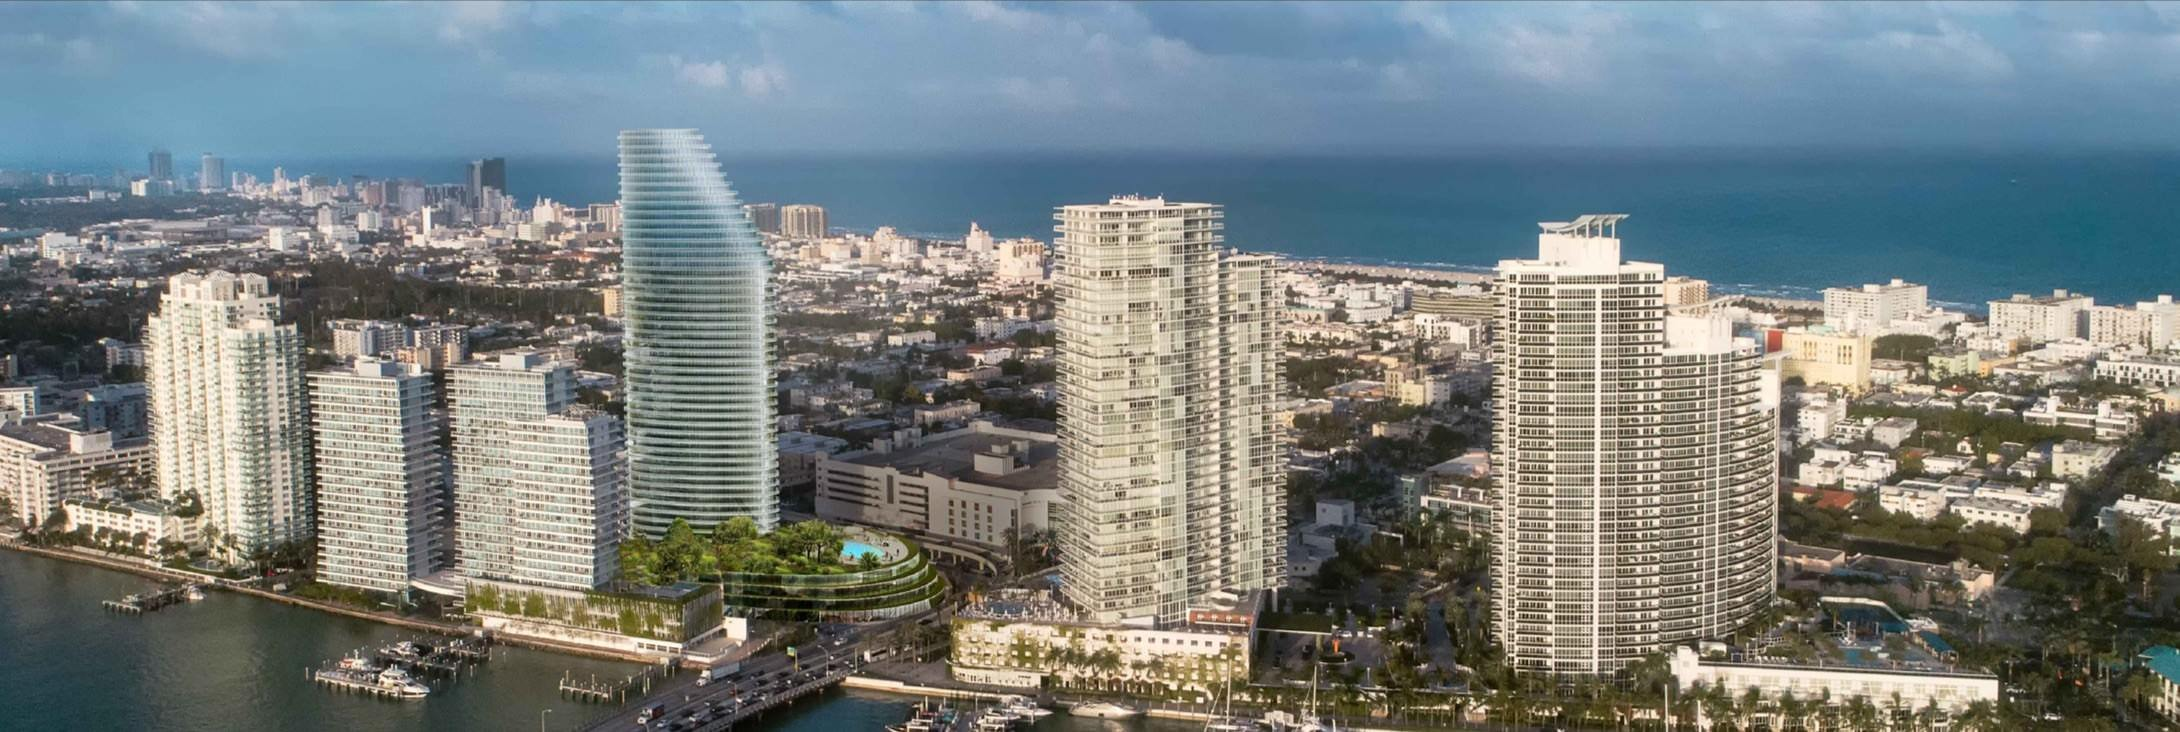 Crescent Heights Strikes Deal With The City Of Miami Beach To Build A 42-Story Tower On Alton Road